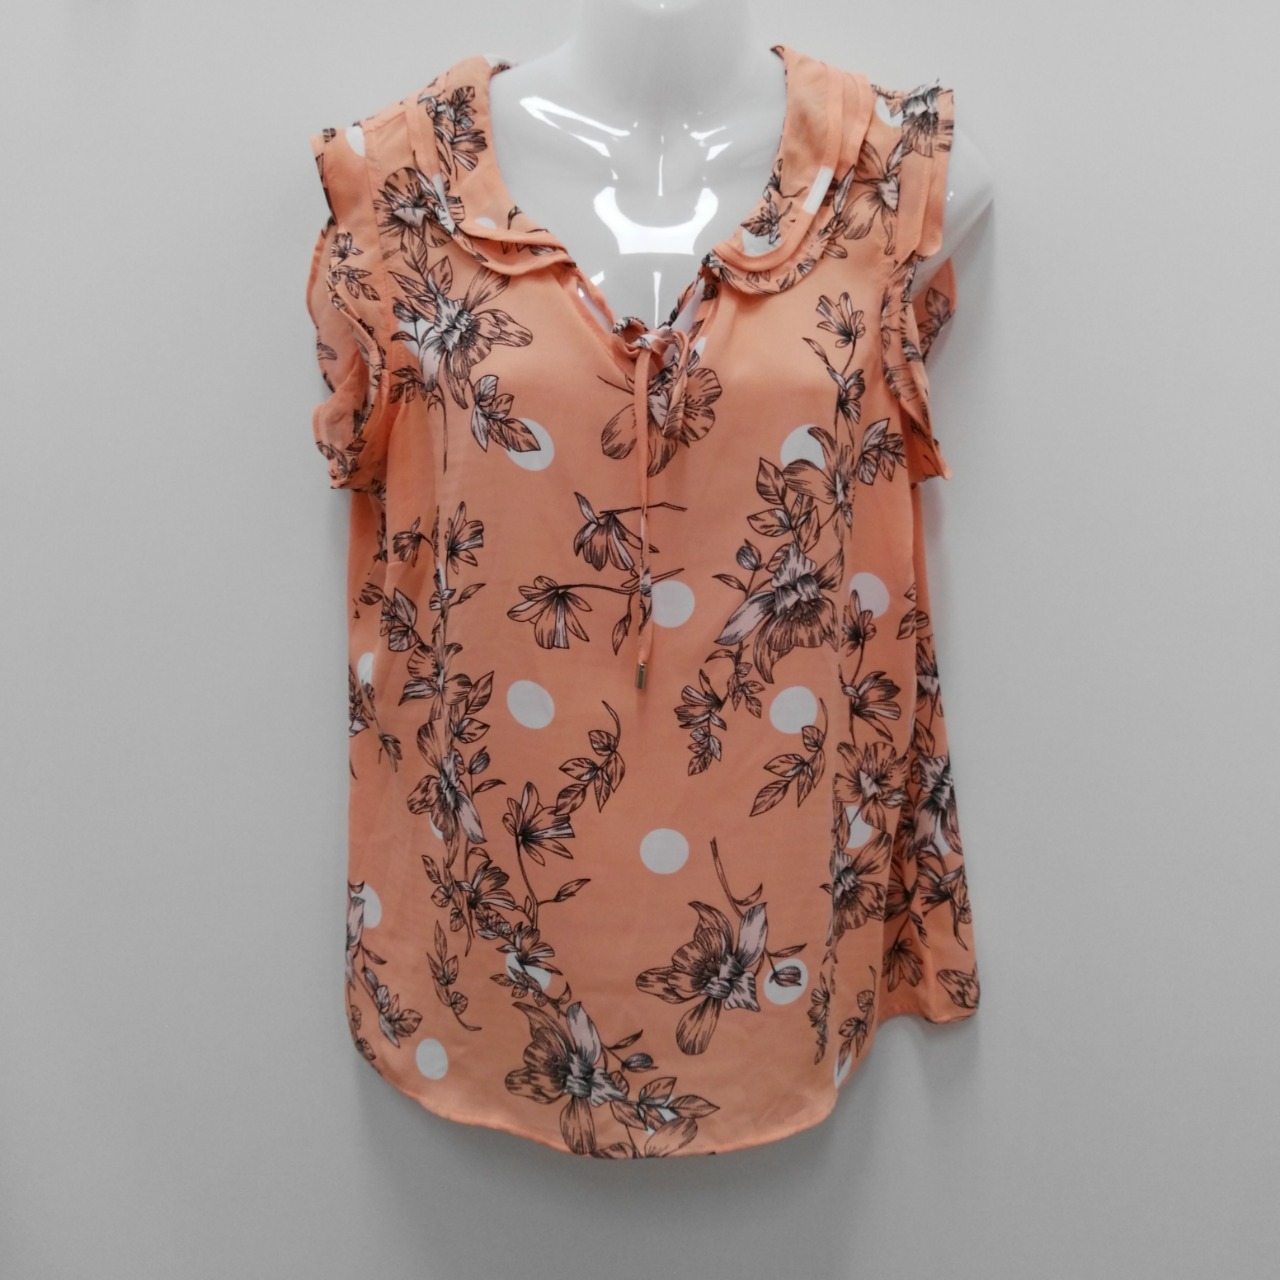 Women's TABLE EIGHT Floral Short Sleeve Top Apricot Floral Size 14